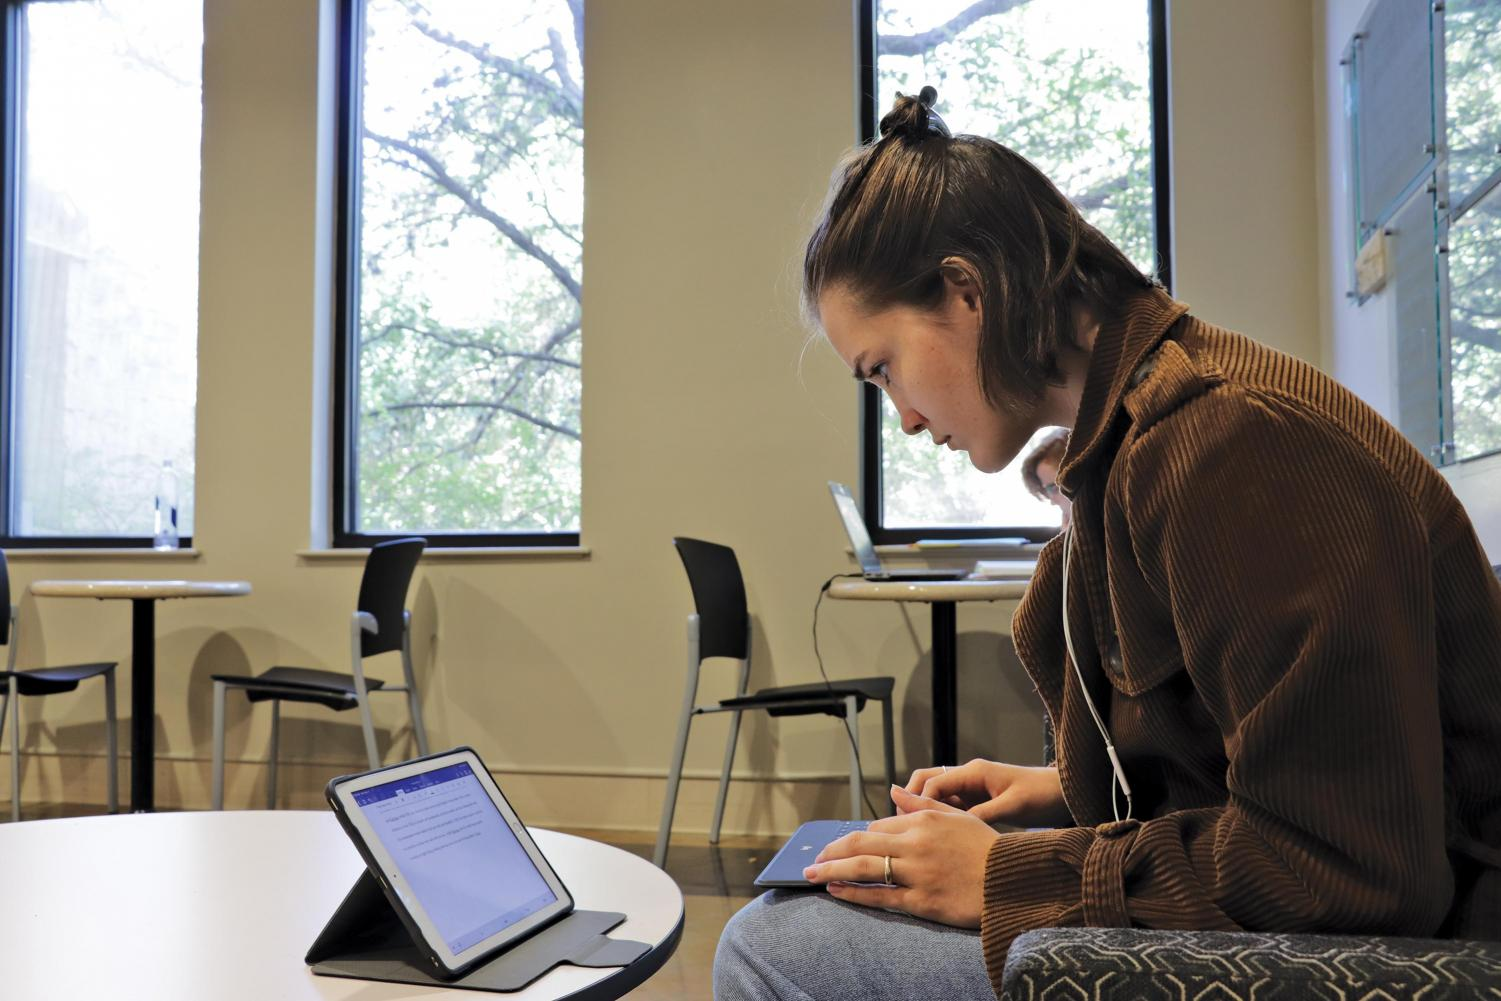 A St. Edward's student studies on the second floor of Ragsdale. College readiness, according to the ACT, SAT and its equivalents is measured by whether or not students meet or exceed the standard passing score for these college entrance exams.